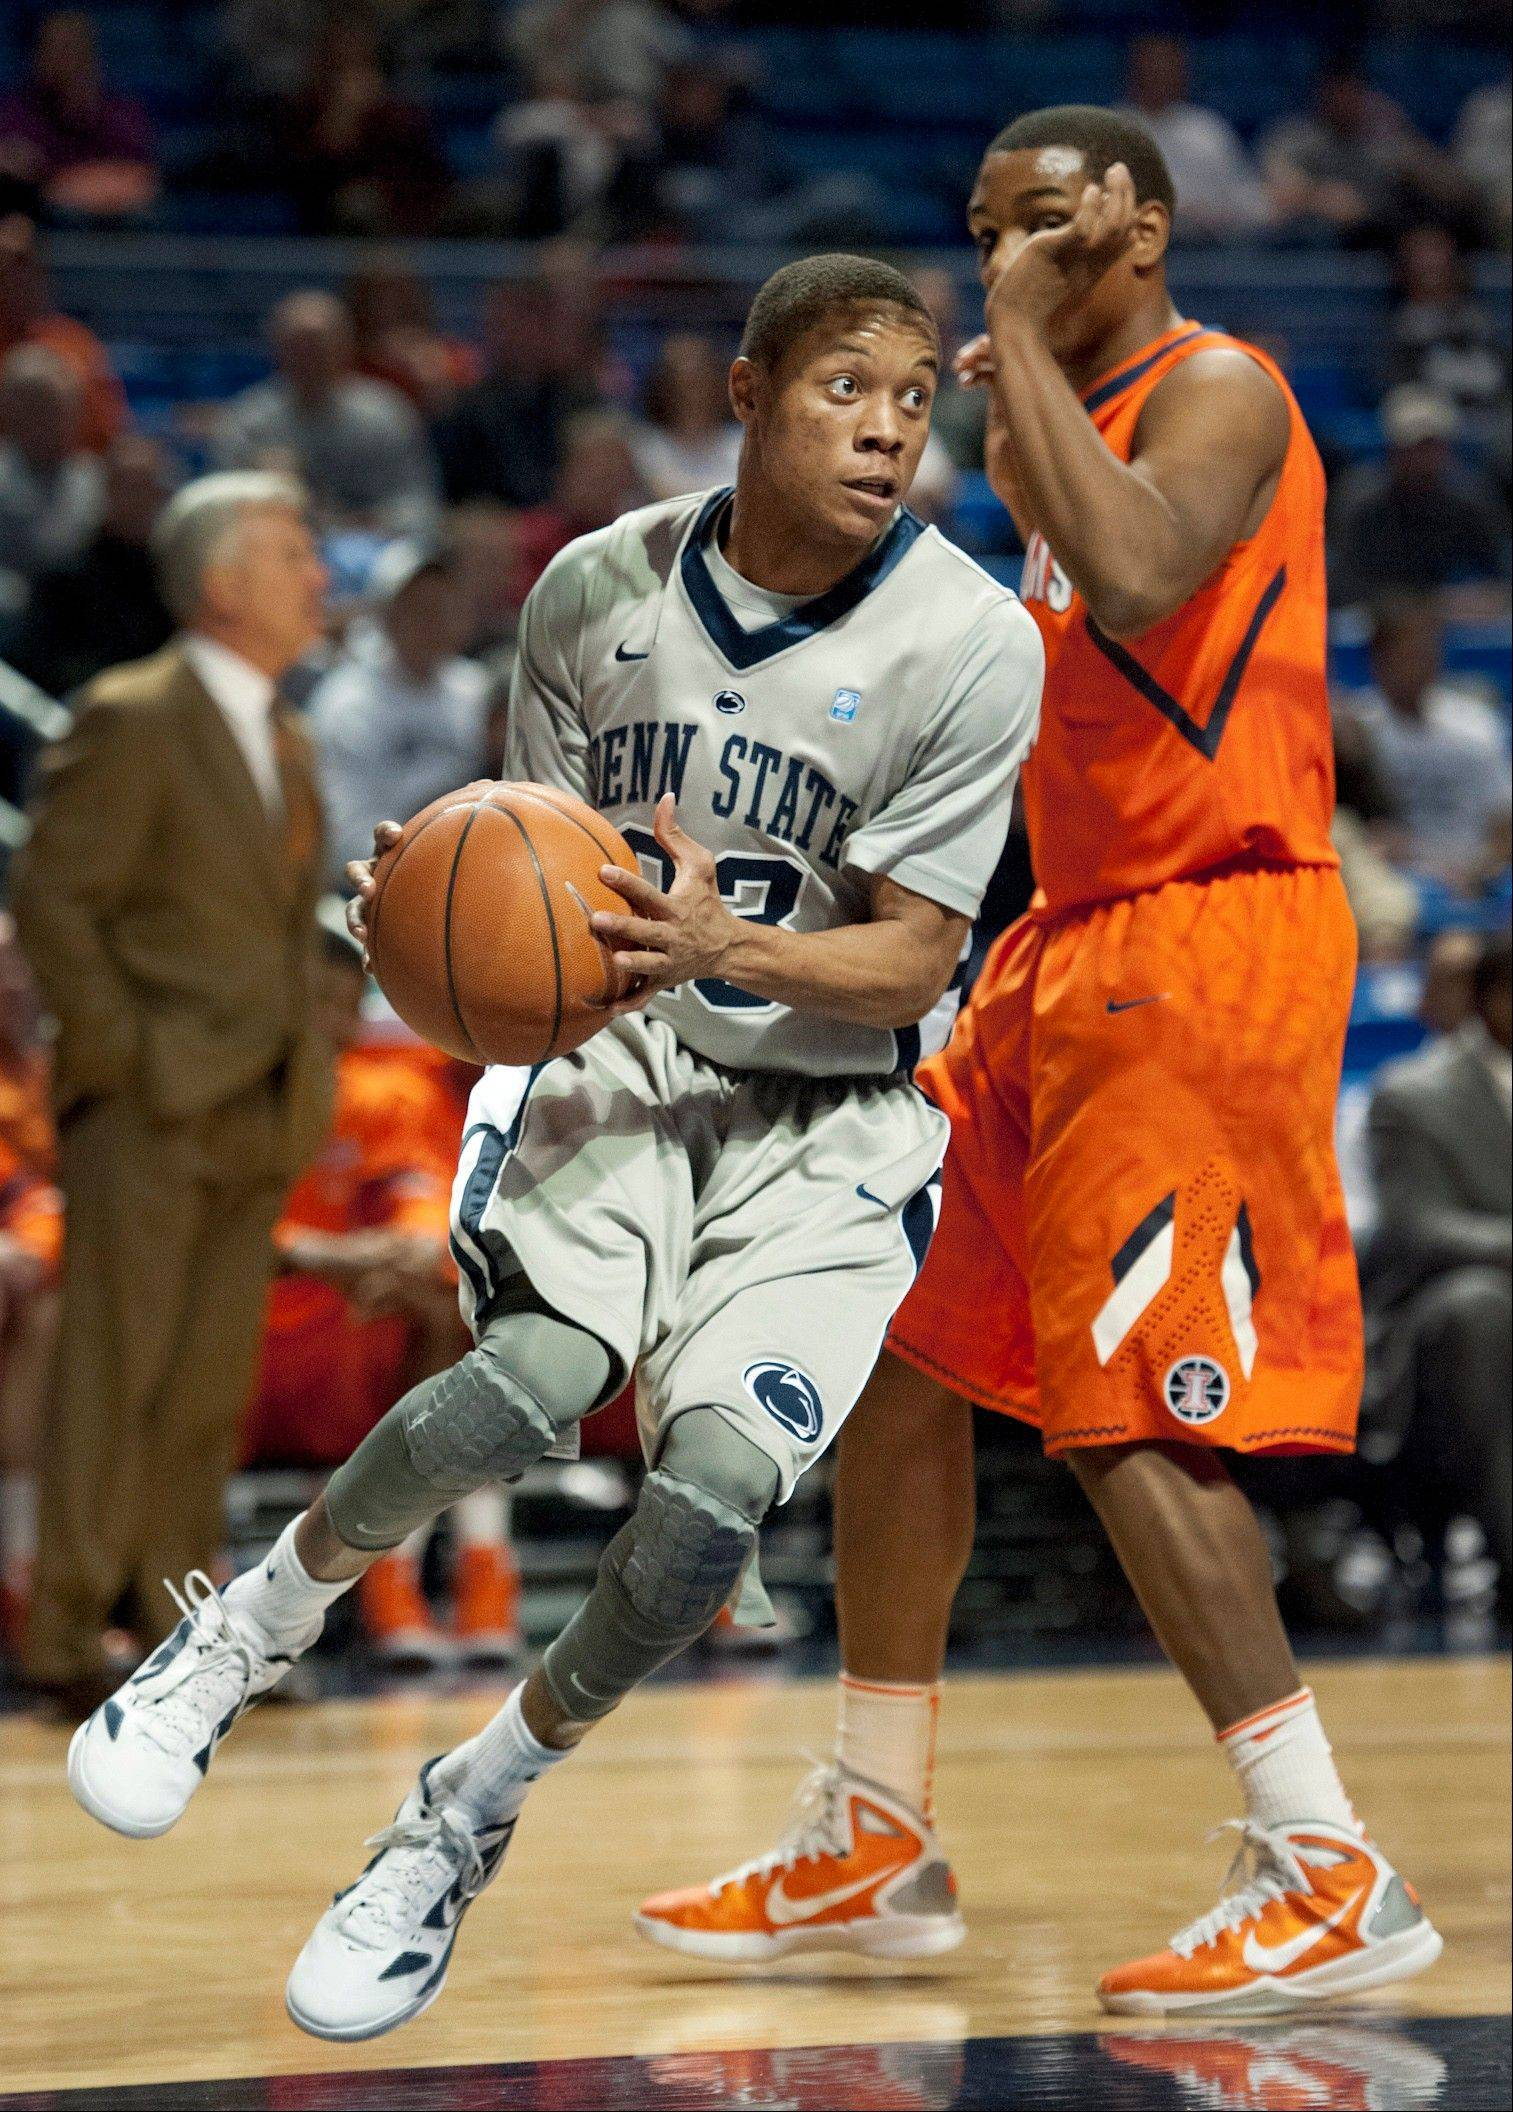 Penn State's Tim Frazier drives past Illinois guard Tracy Abrams during the first half of a Jan. 19, 2012, game in State College, Pa. Frazier led the Big Ten in assists (6.2 per game) and finishing second in scoring (18.8 points) and steals (2.4) last season.